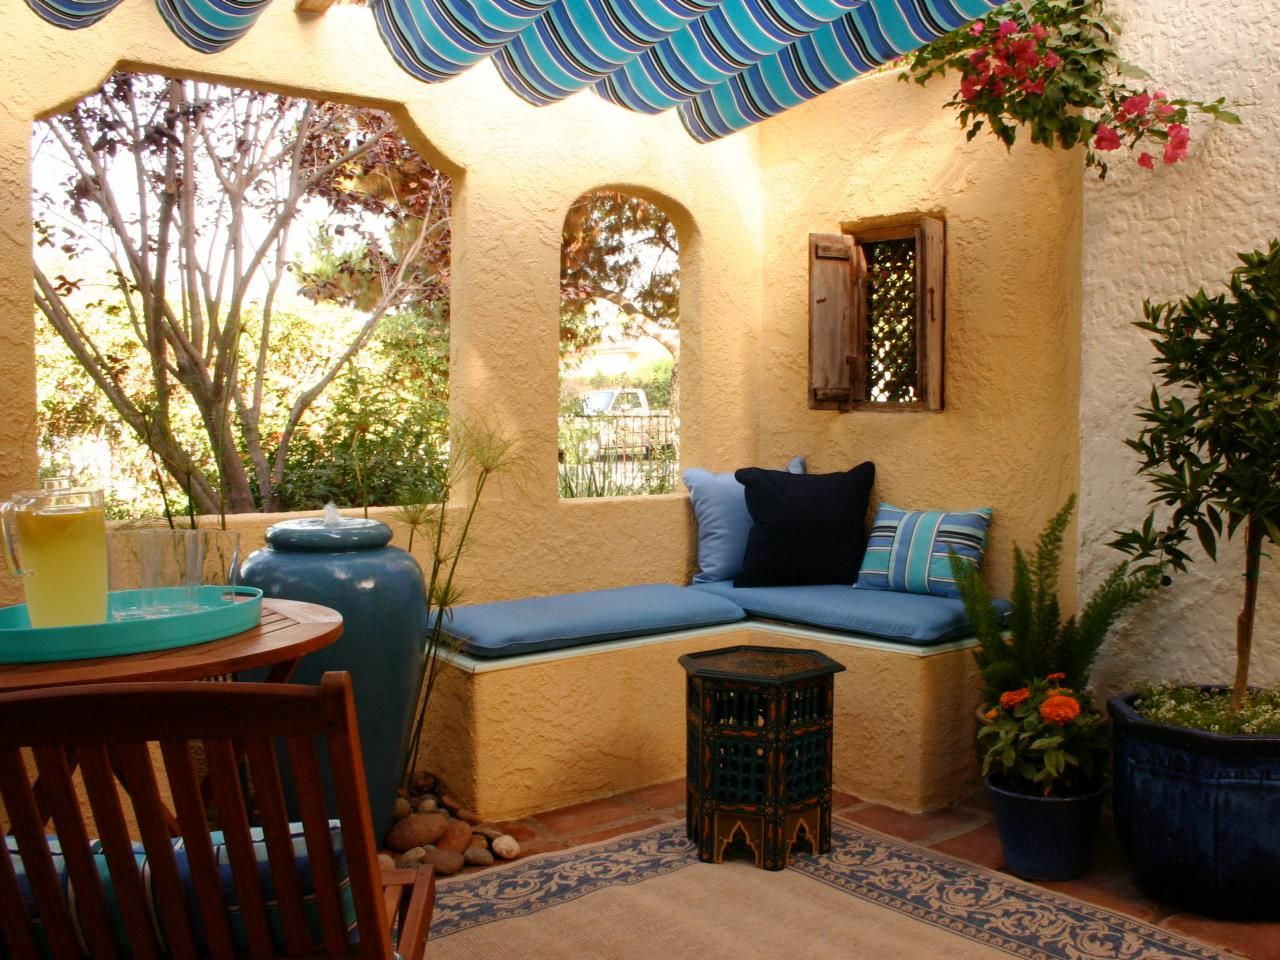 Spanish Patio Add To Back Of House